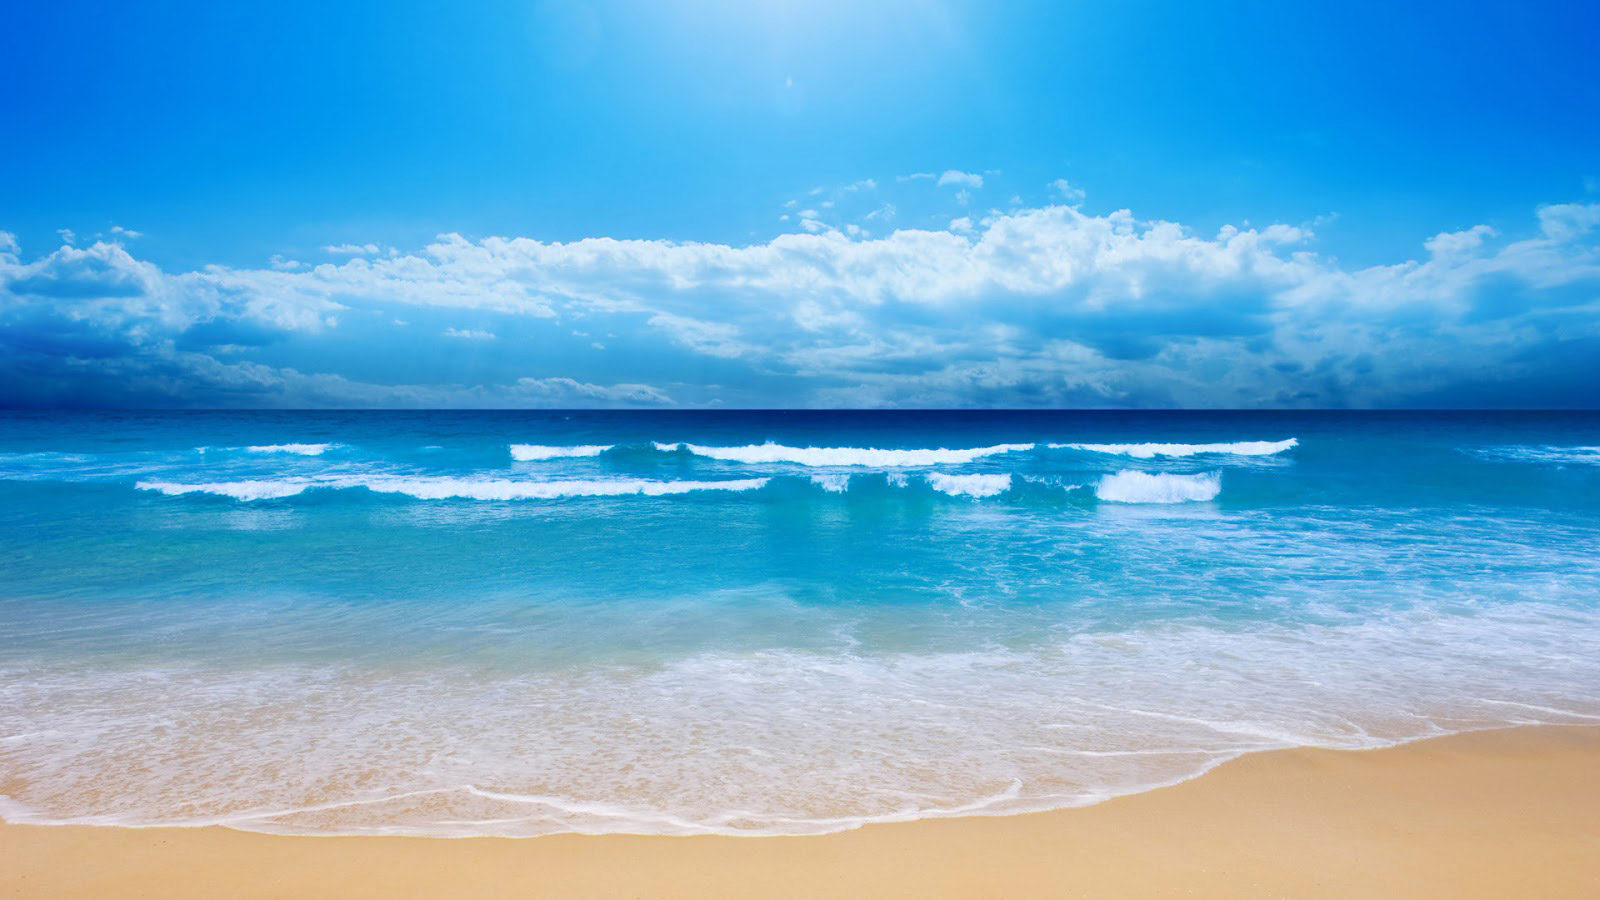 129 Beach Wallpaper Examples To Put On Your Desktop Background 1600x900